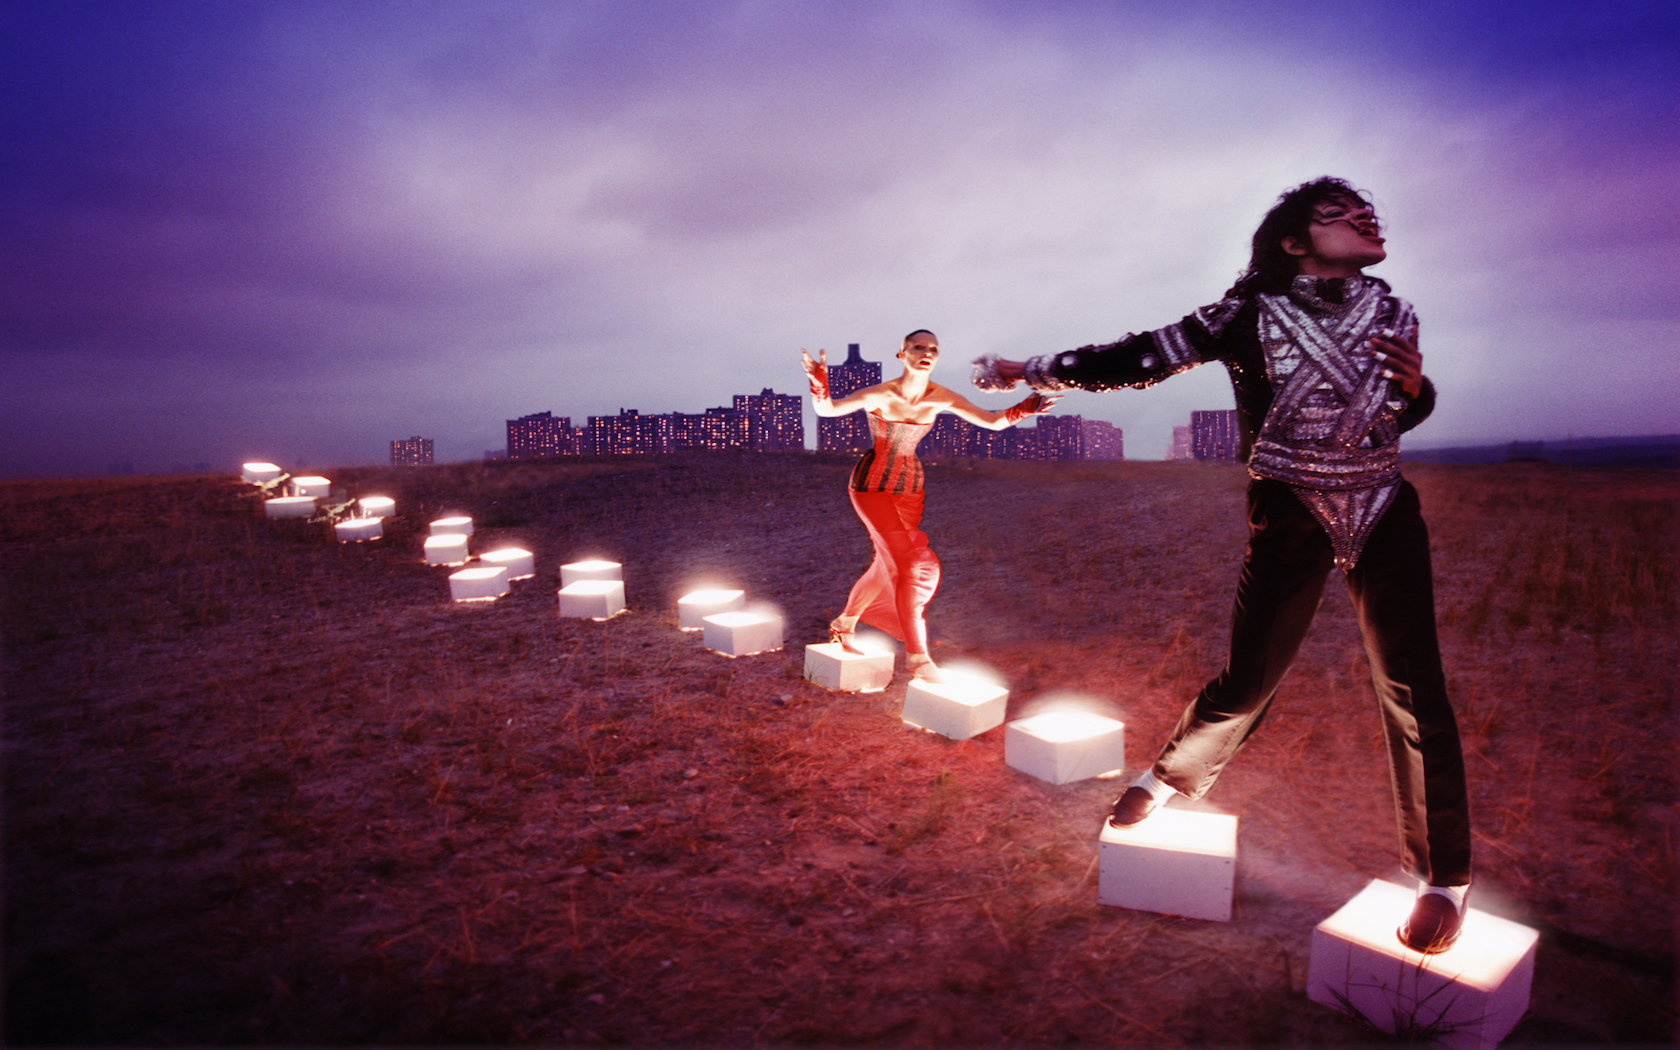 Image by David LaChappelle from  Awol Junkee